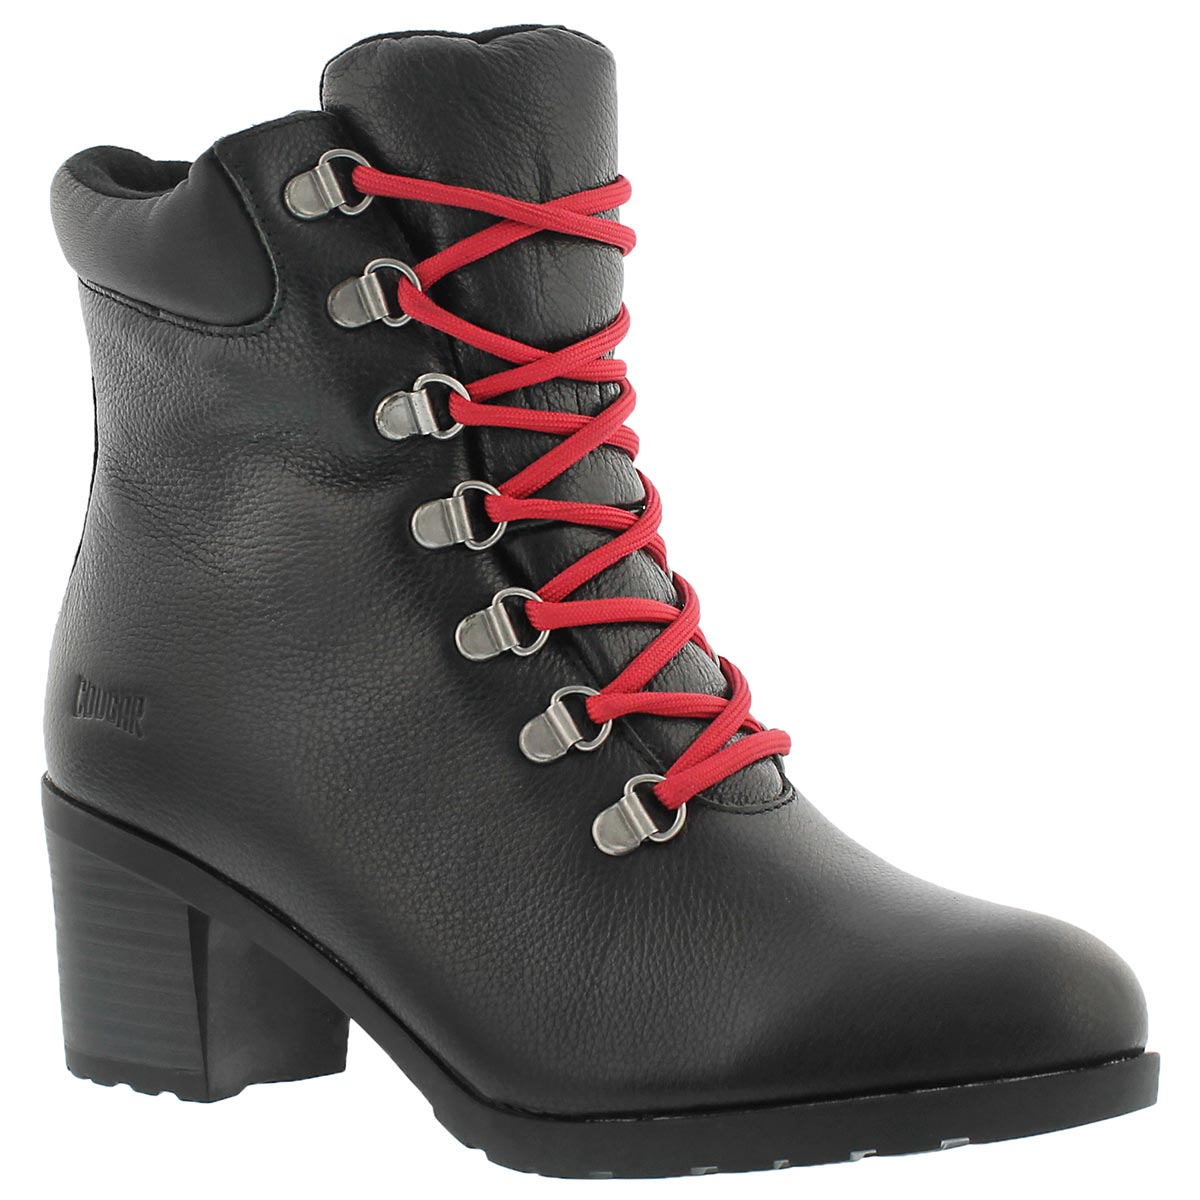 Women's ANGIE black lace up waterproof ankle boots